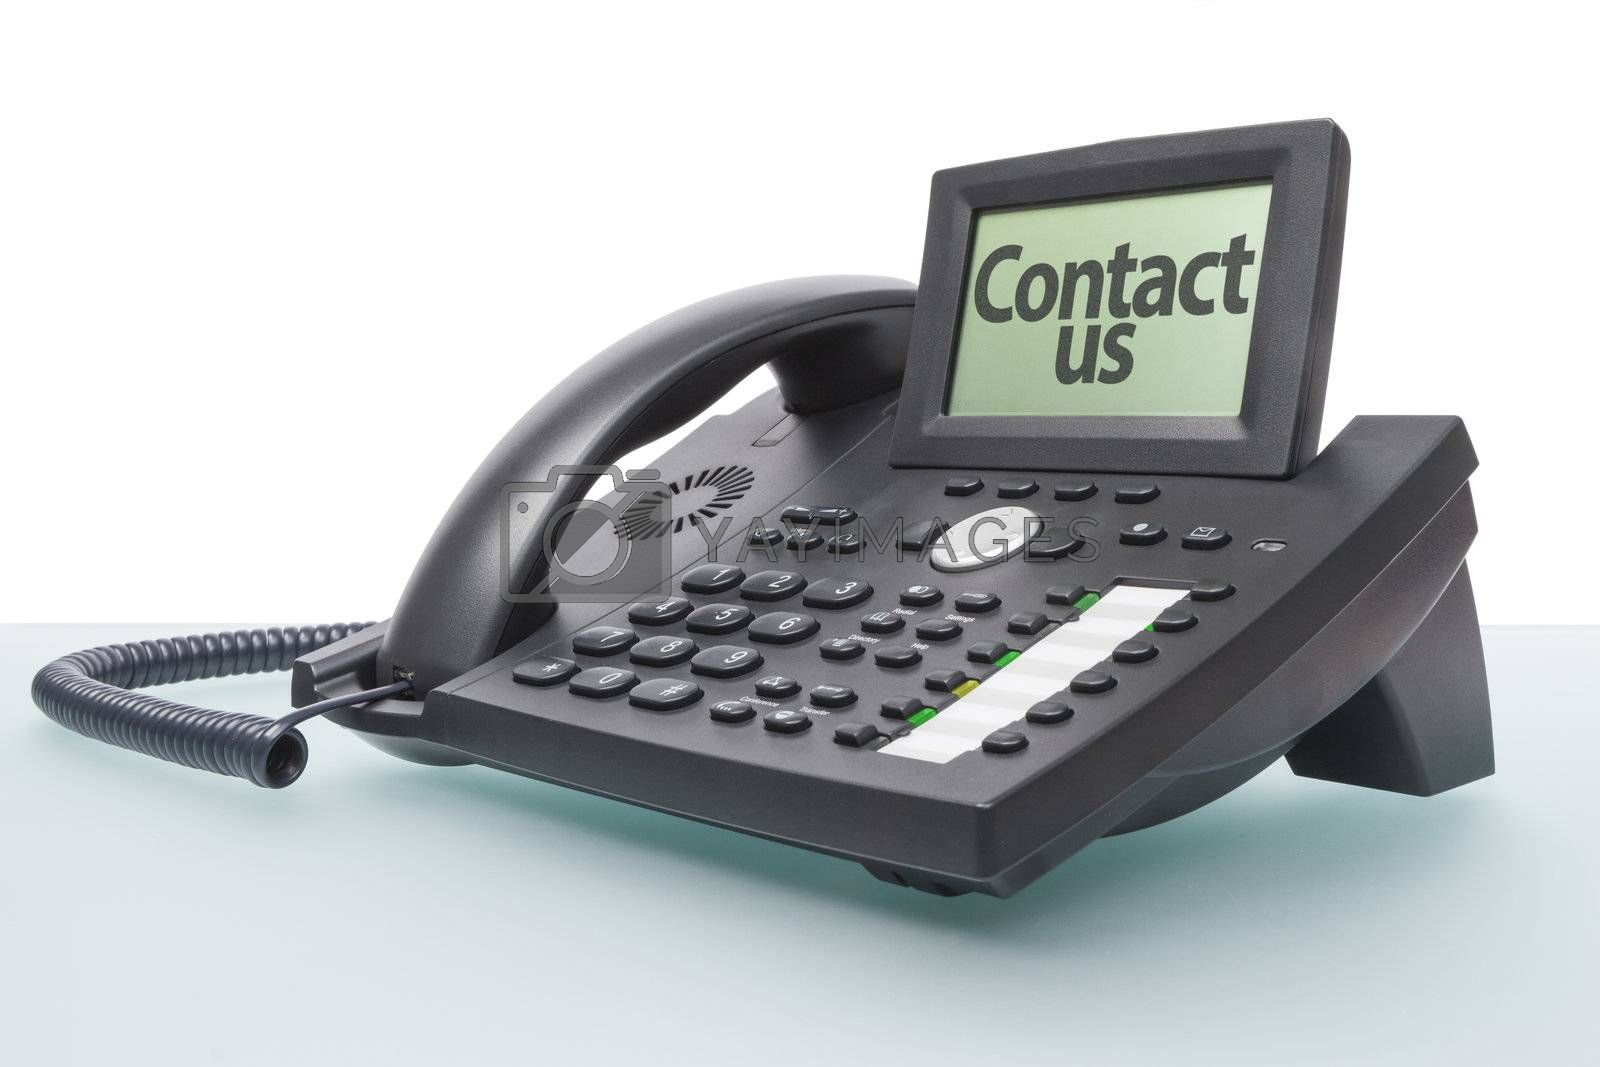 modern voip telephone on glas-topped desk saying CONTACT US